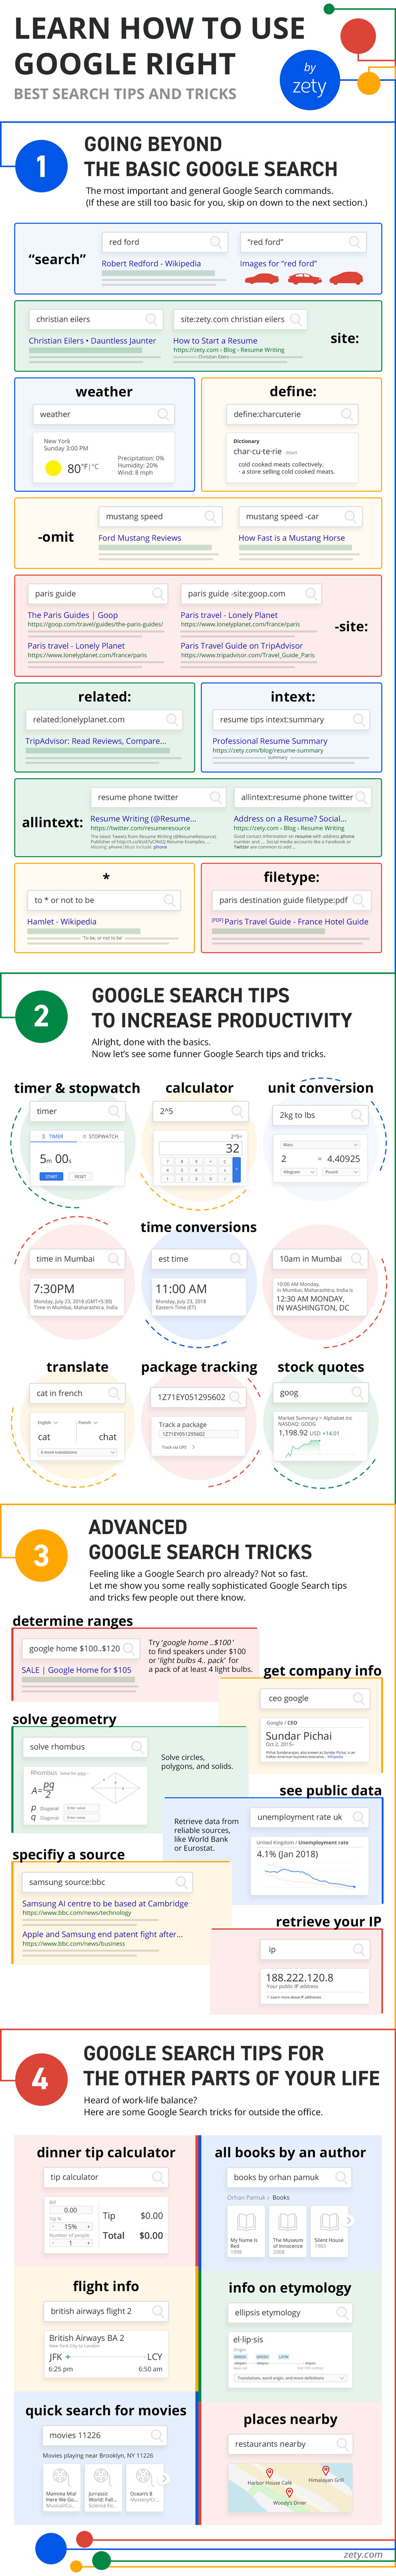 Google Search Best Practices Infographic